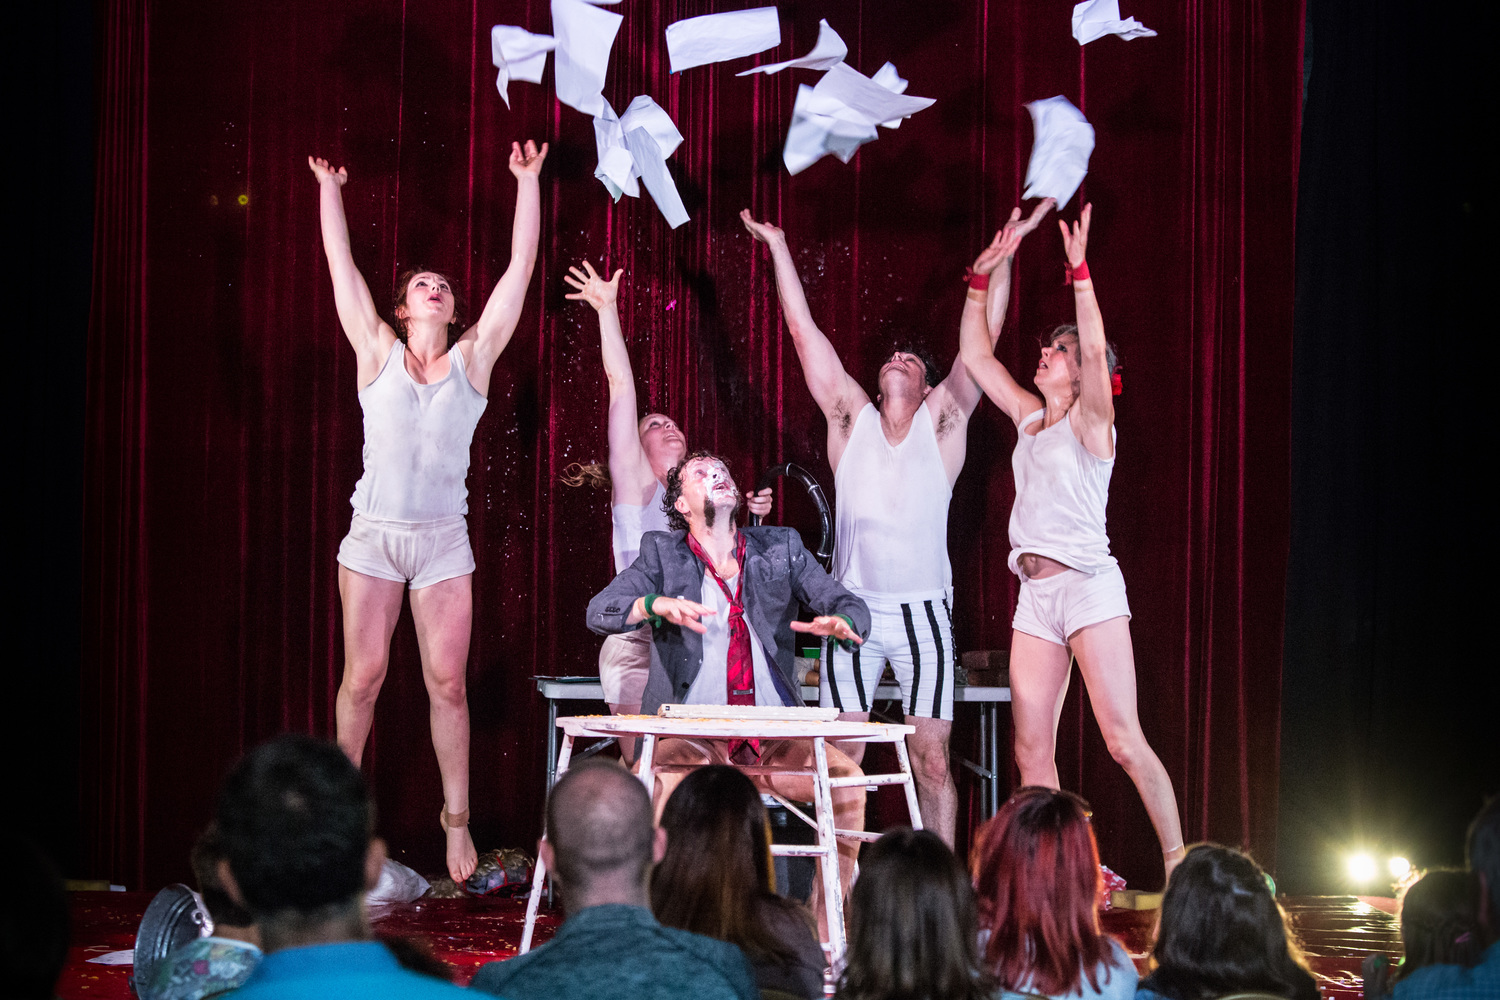 BWW Interview: Tumble Circus Co-Founder Tina Segner Talks UNSUITABLE At Fringeworld